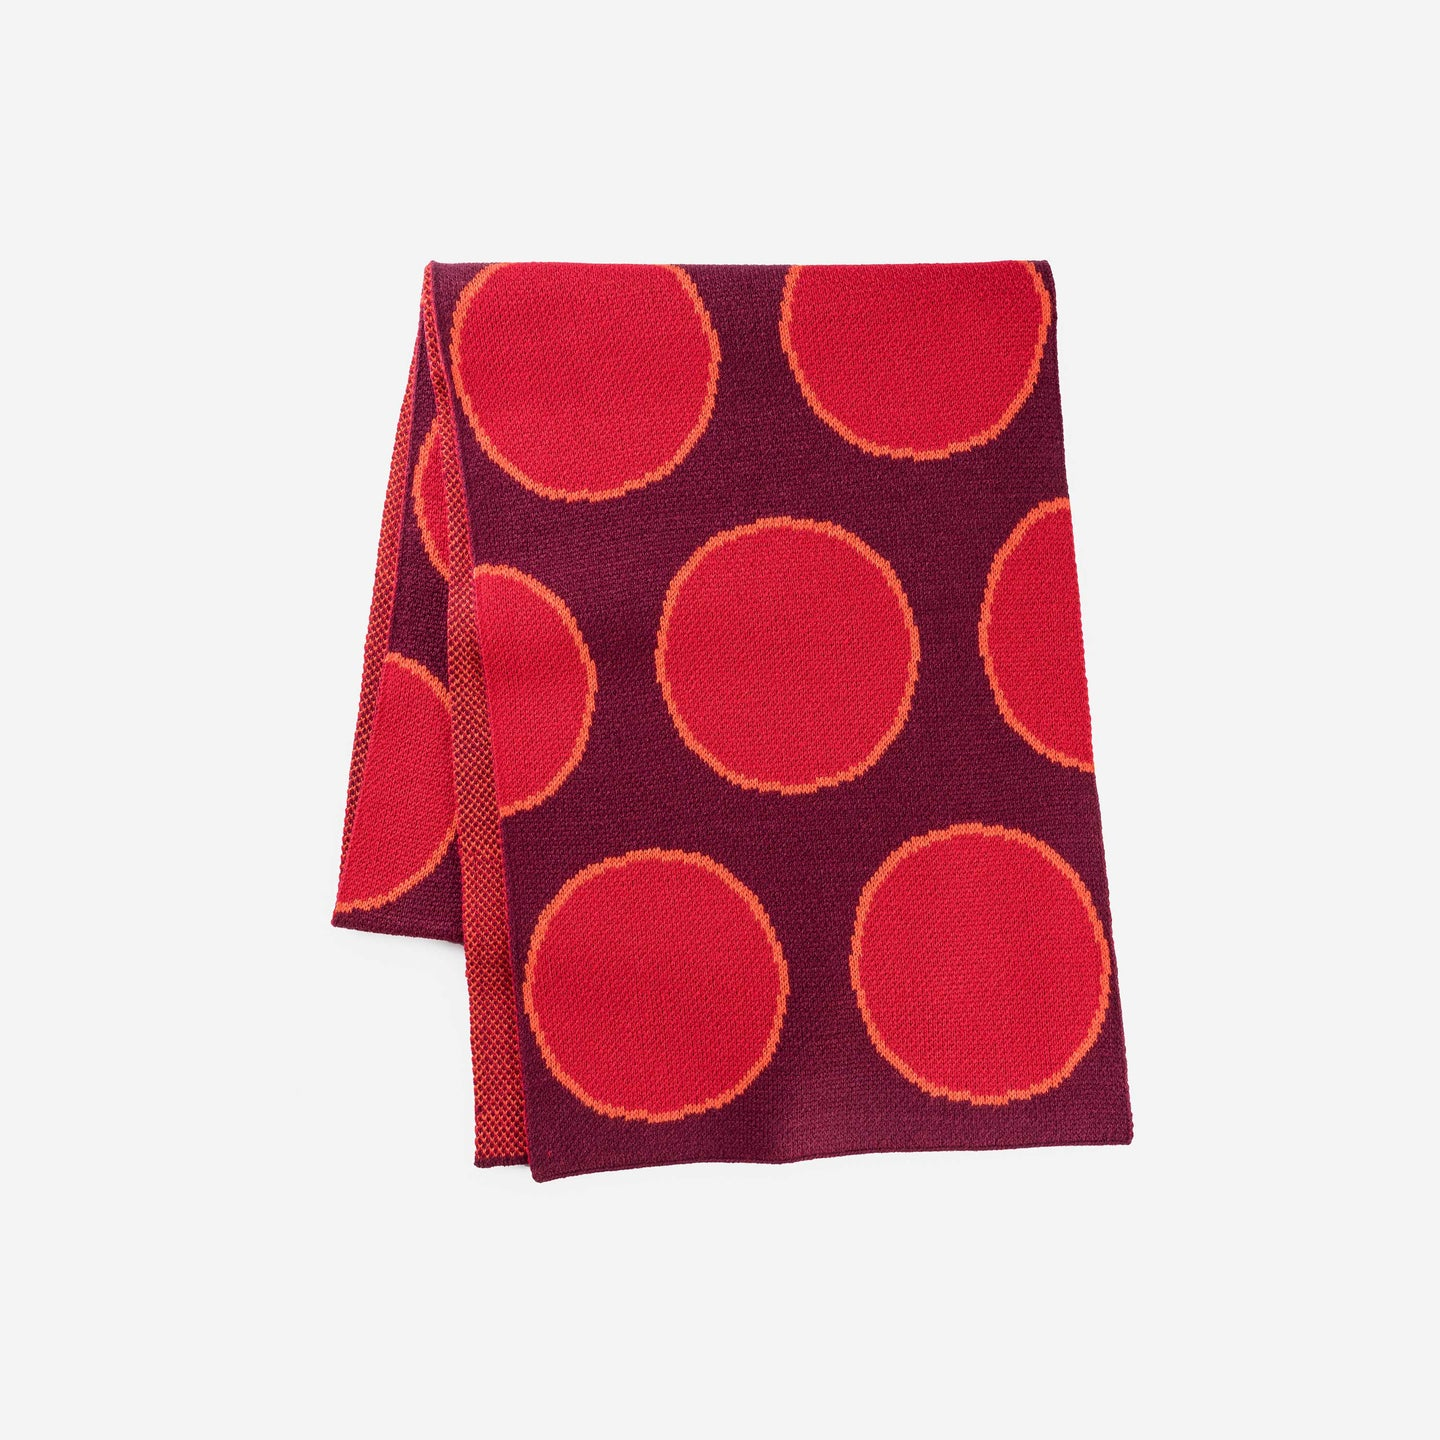 Eclipse Dot Umbra Scarf Jacquard Polka Dot Pattern Large